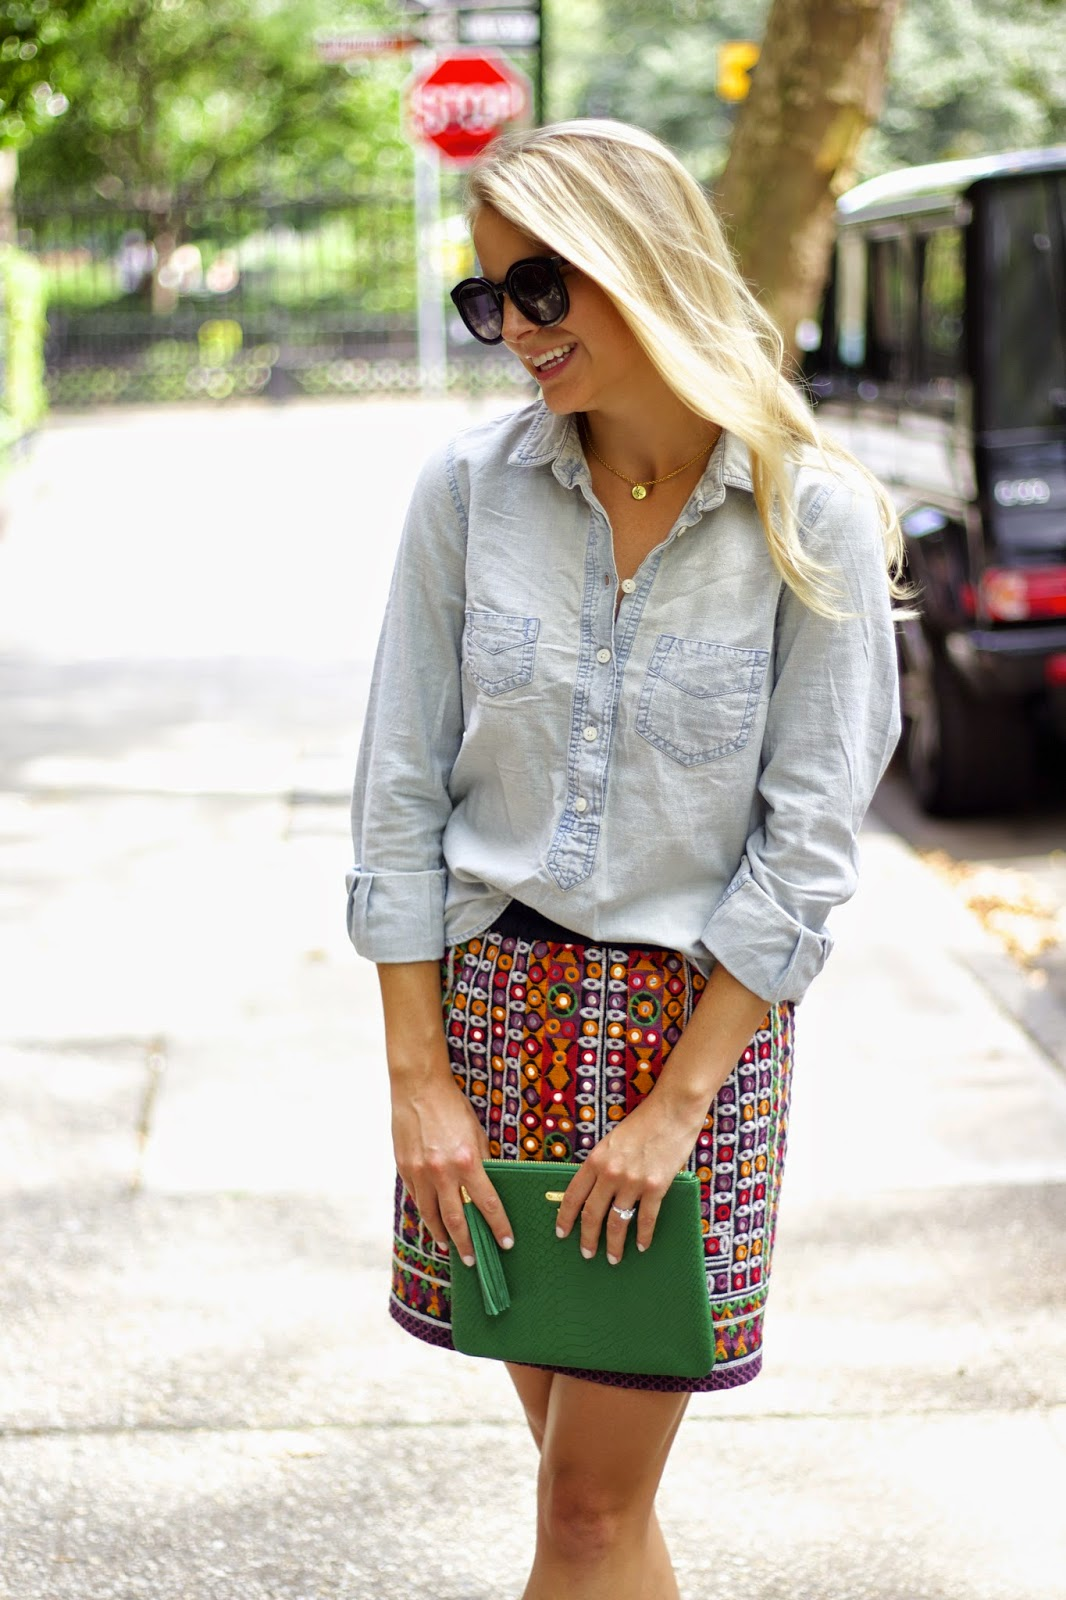 gramercy NY, vibrant colors, Espejo stitched skirt, anthropologie, chambray shirt, weekend wear